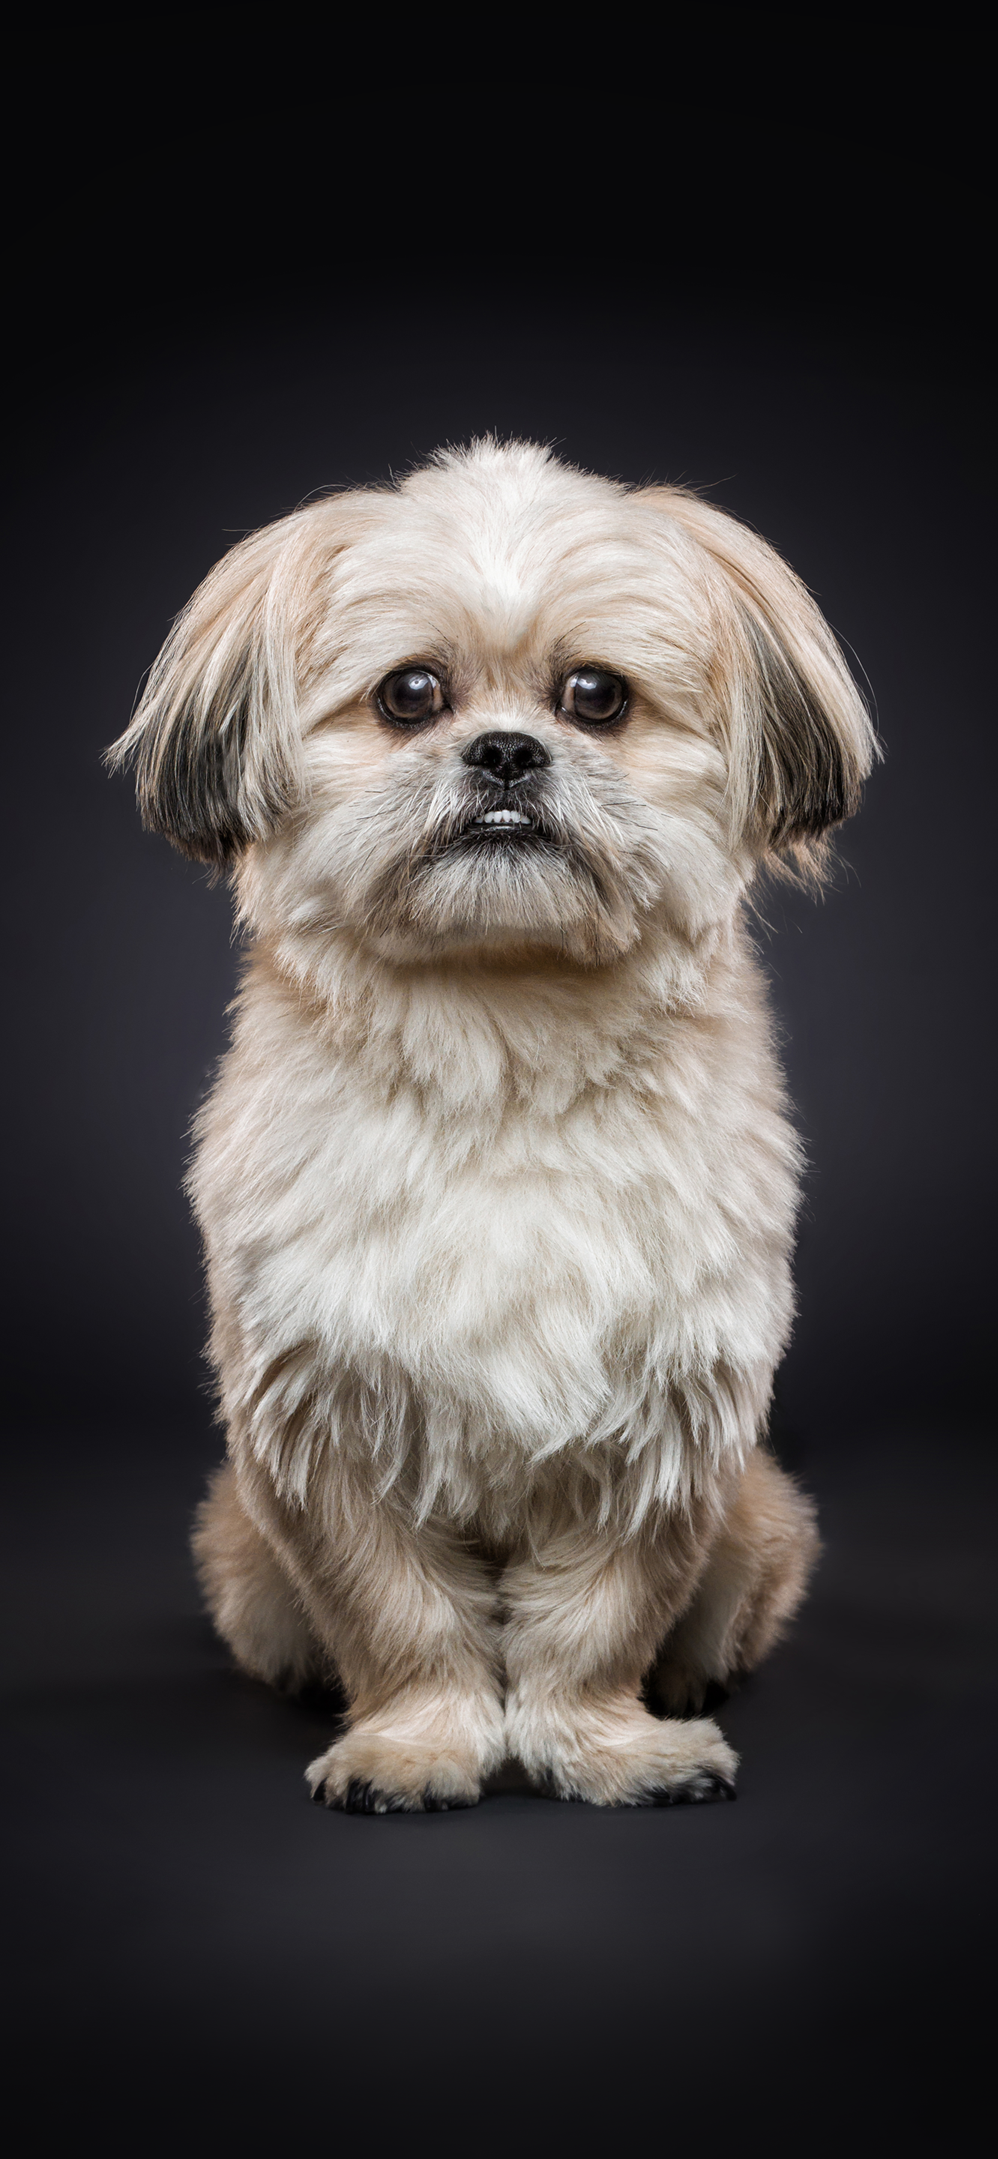 Download These Adorable Christian Vieler Dog Wallpapers For